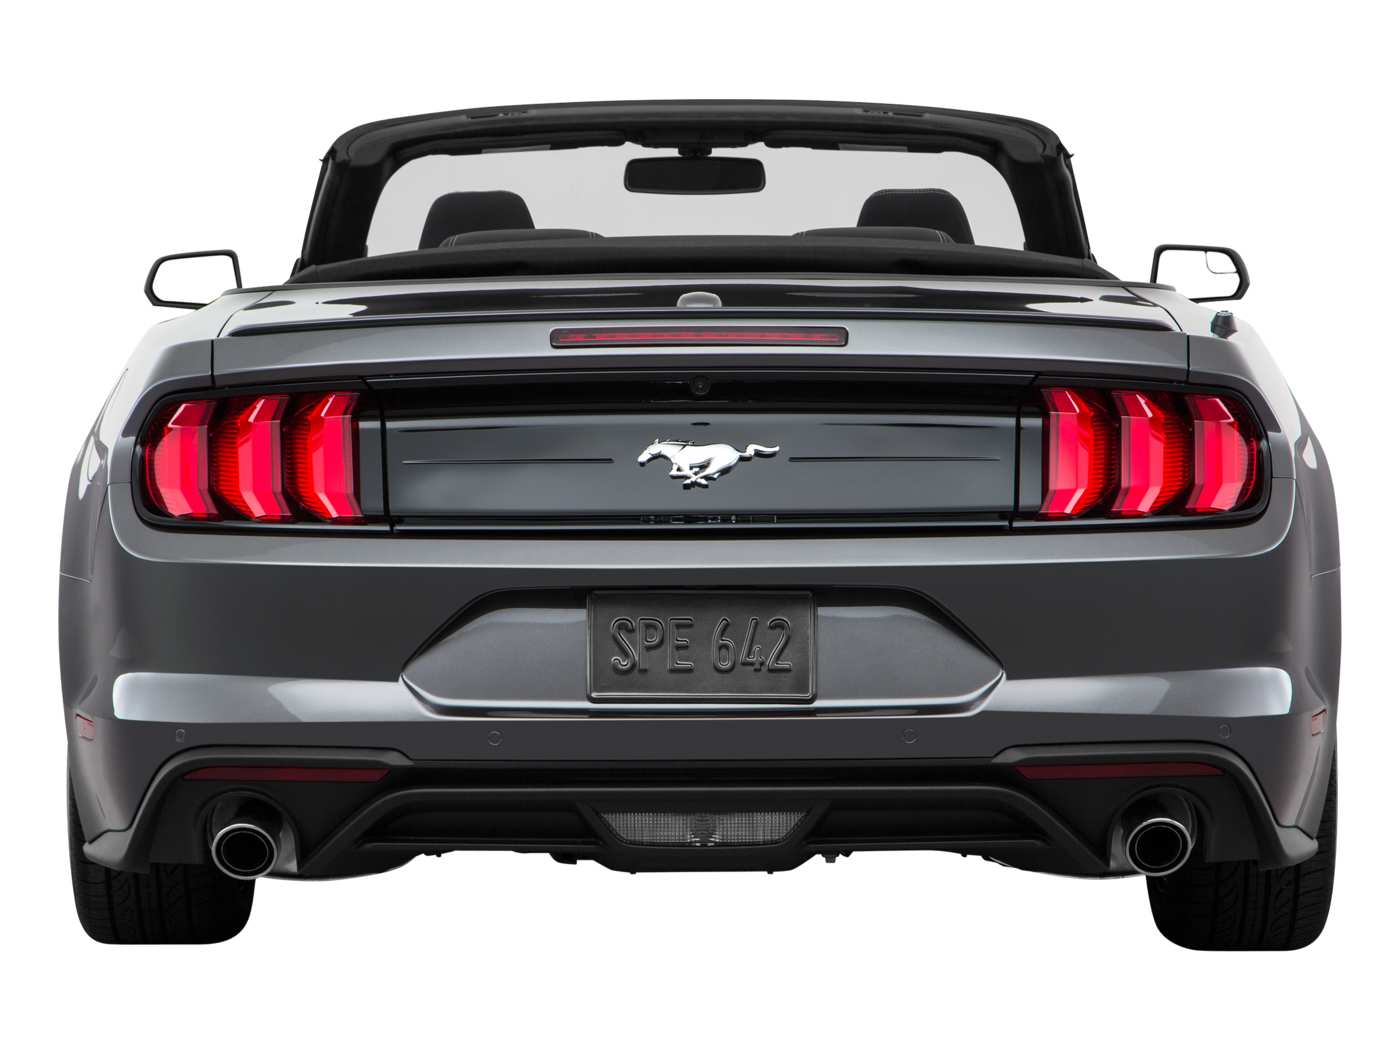 2019 Ford Mustang Ecoboost Convertible Rear